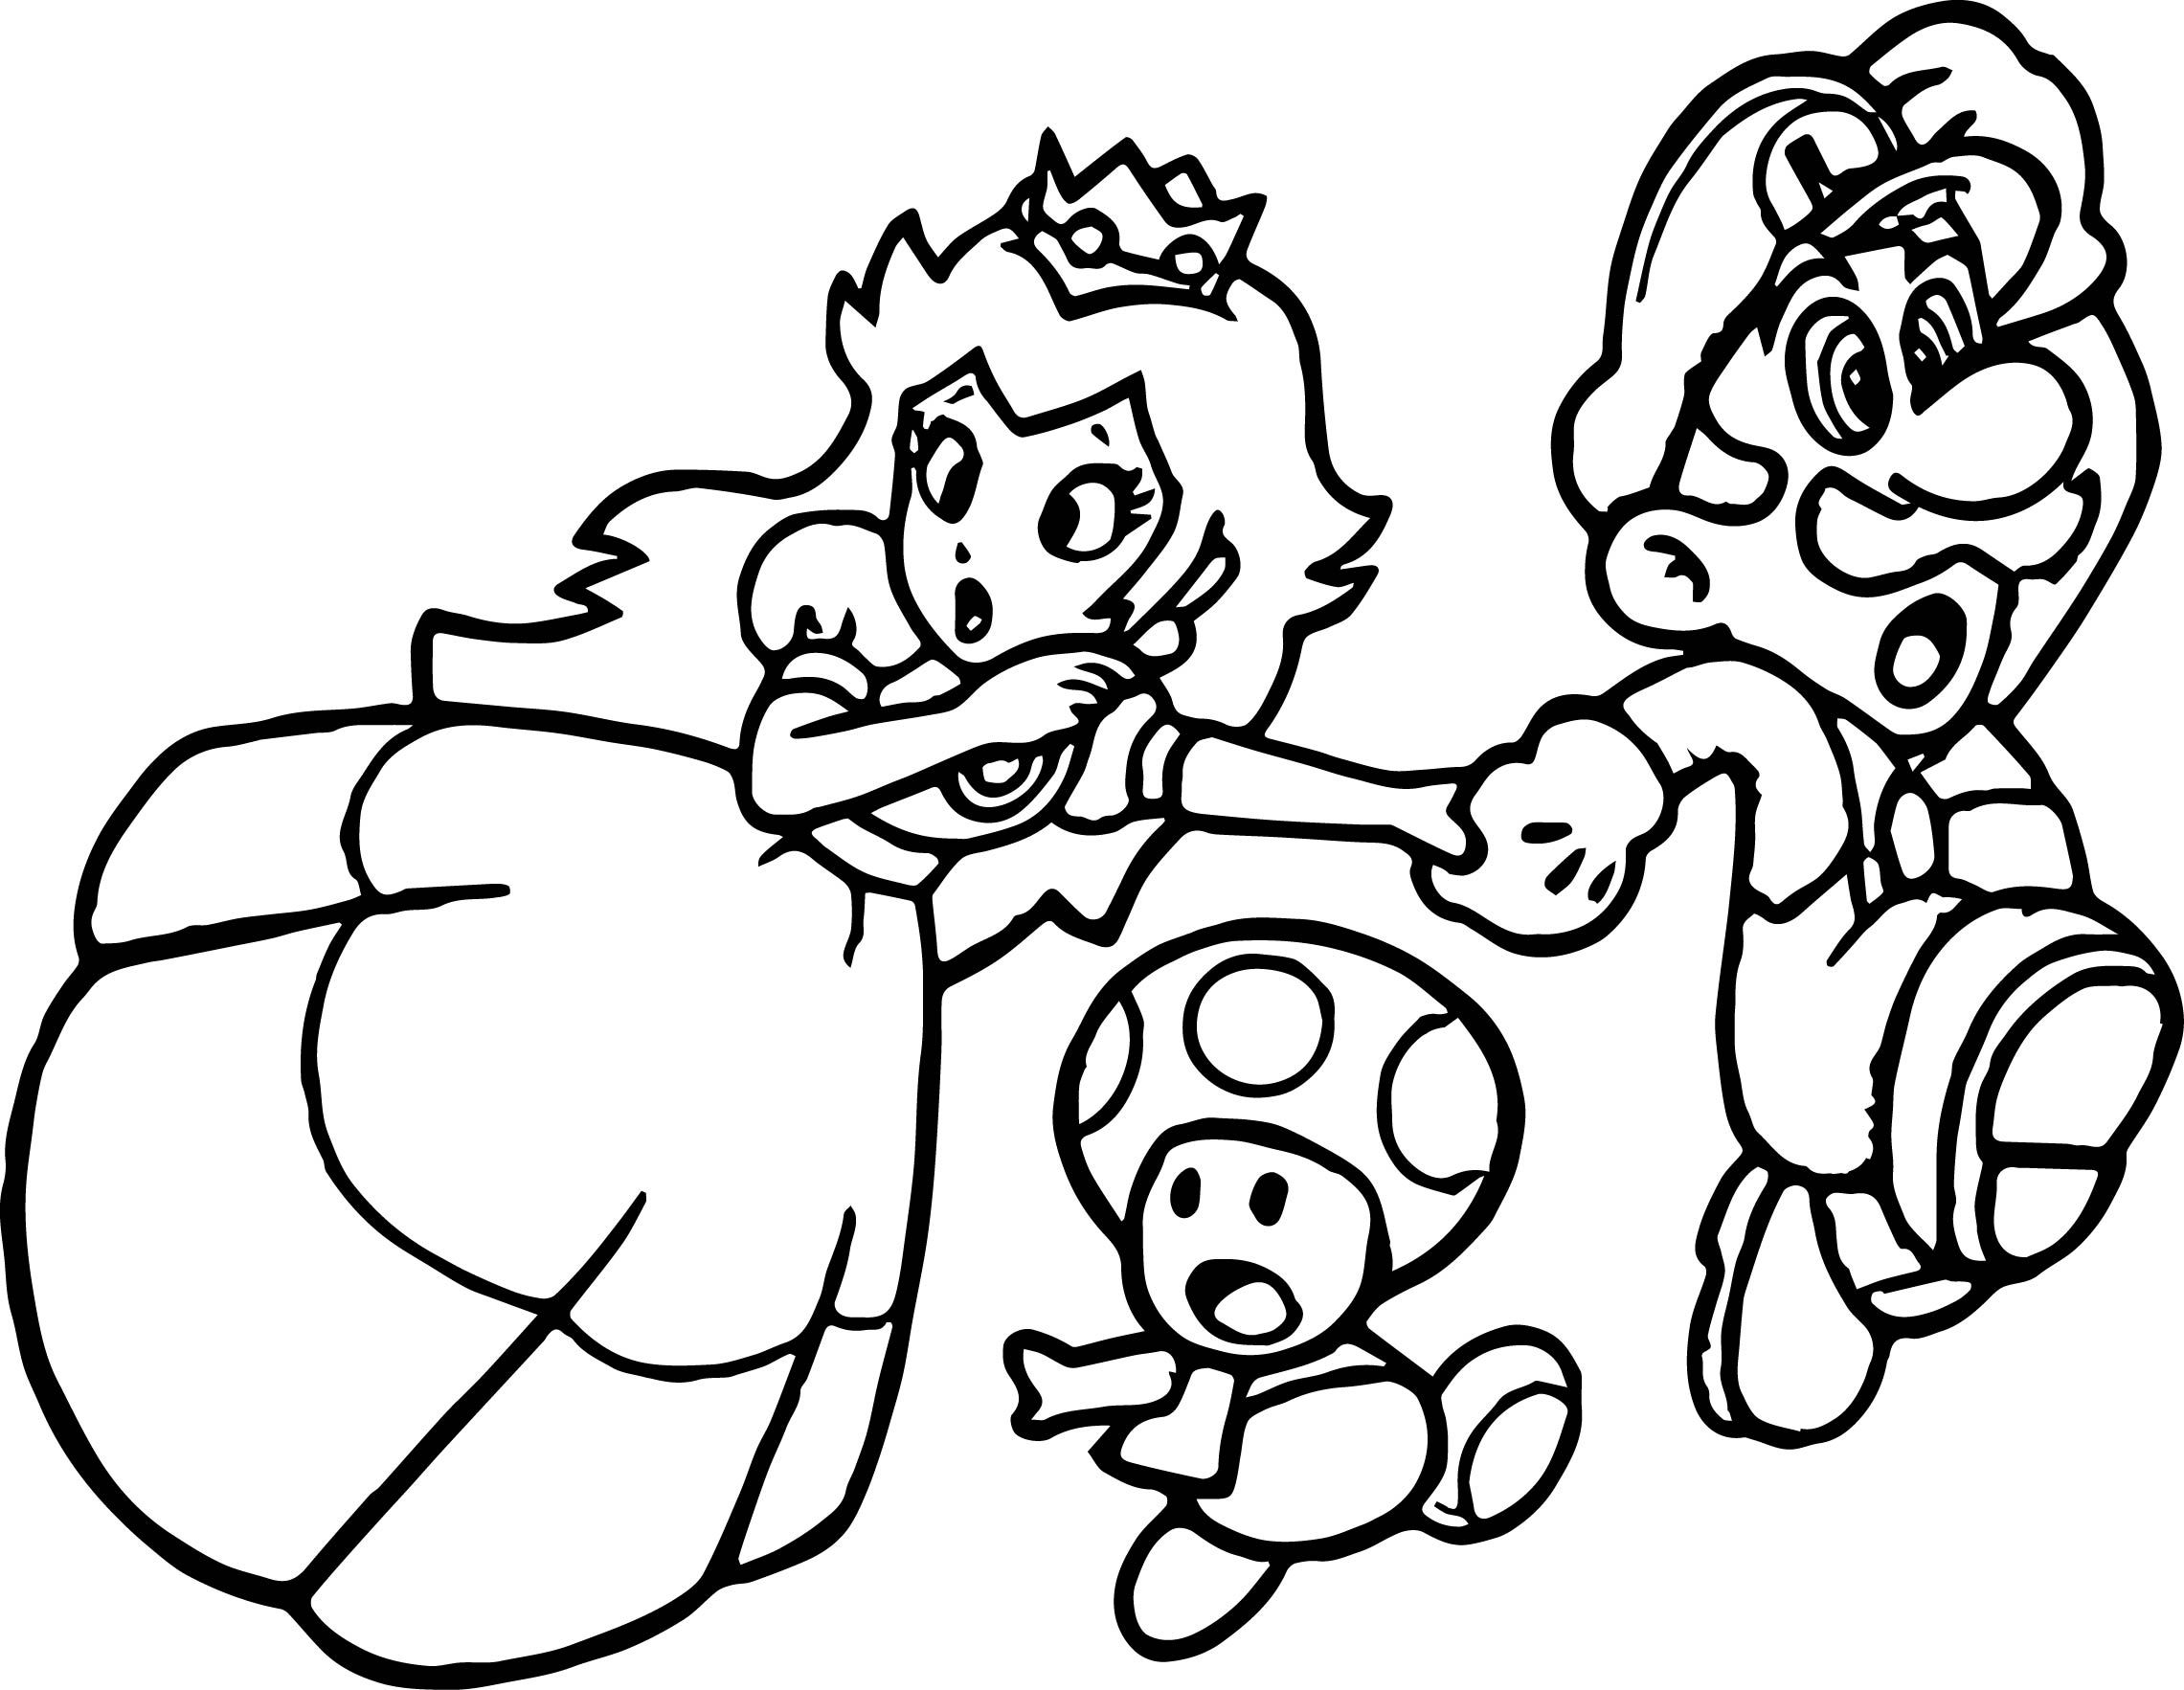 Super Mario Princess Mushroom Coloring Page Super Mario Coloring